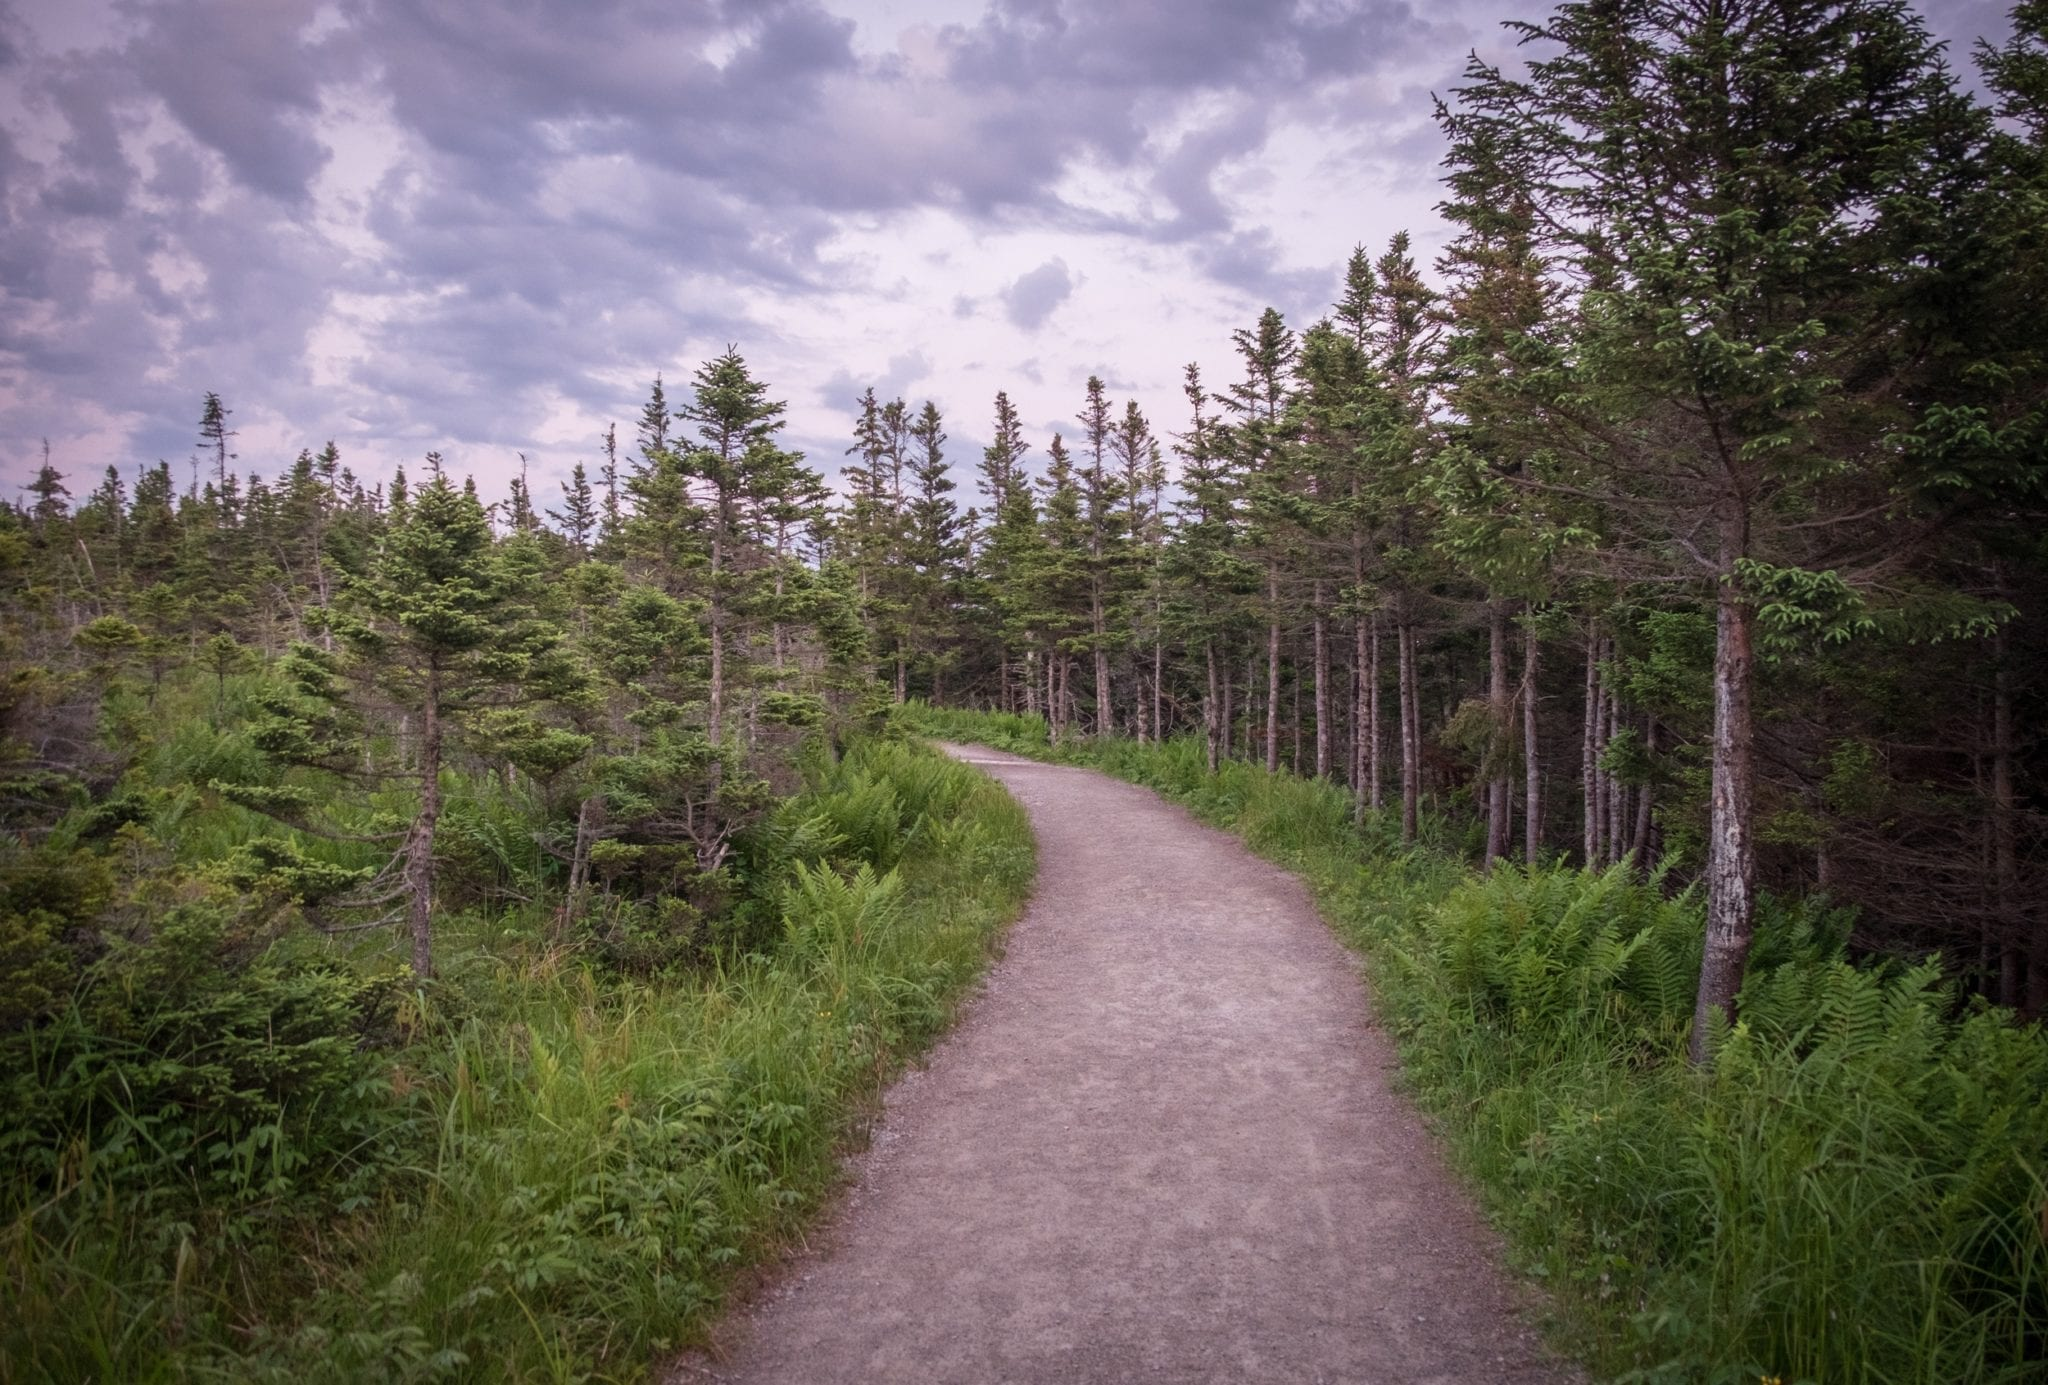 A path through the woods underneath a cloudy purple sky at Cape Breton Highlands National Park.